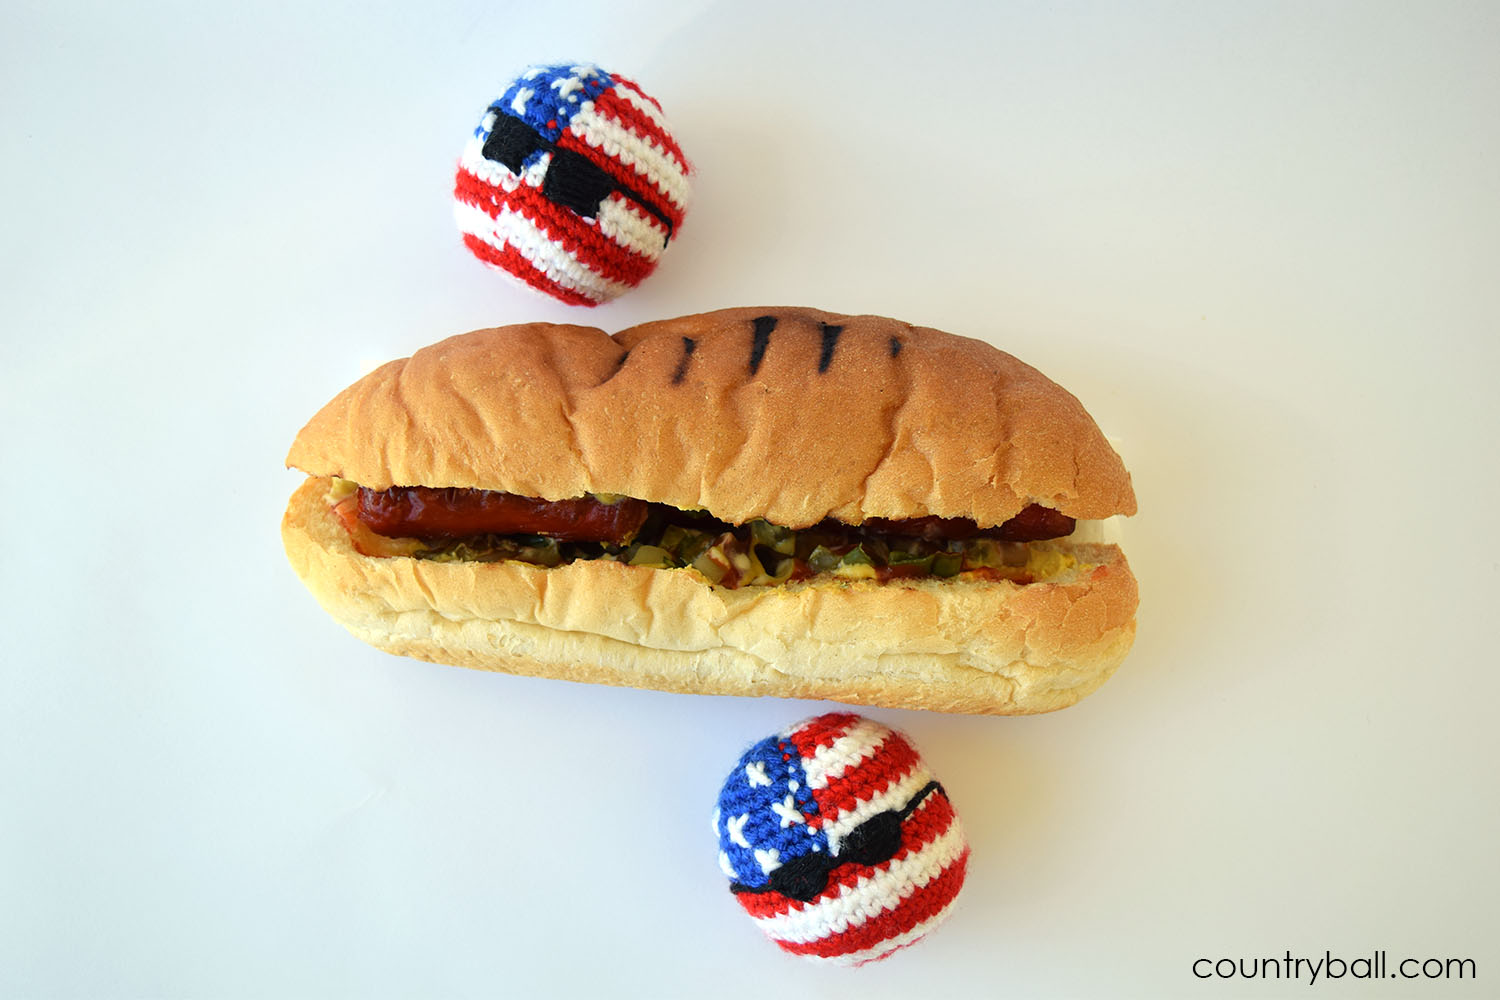 USABall and a delicious Hot Dog